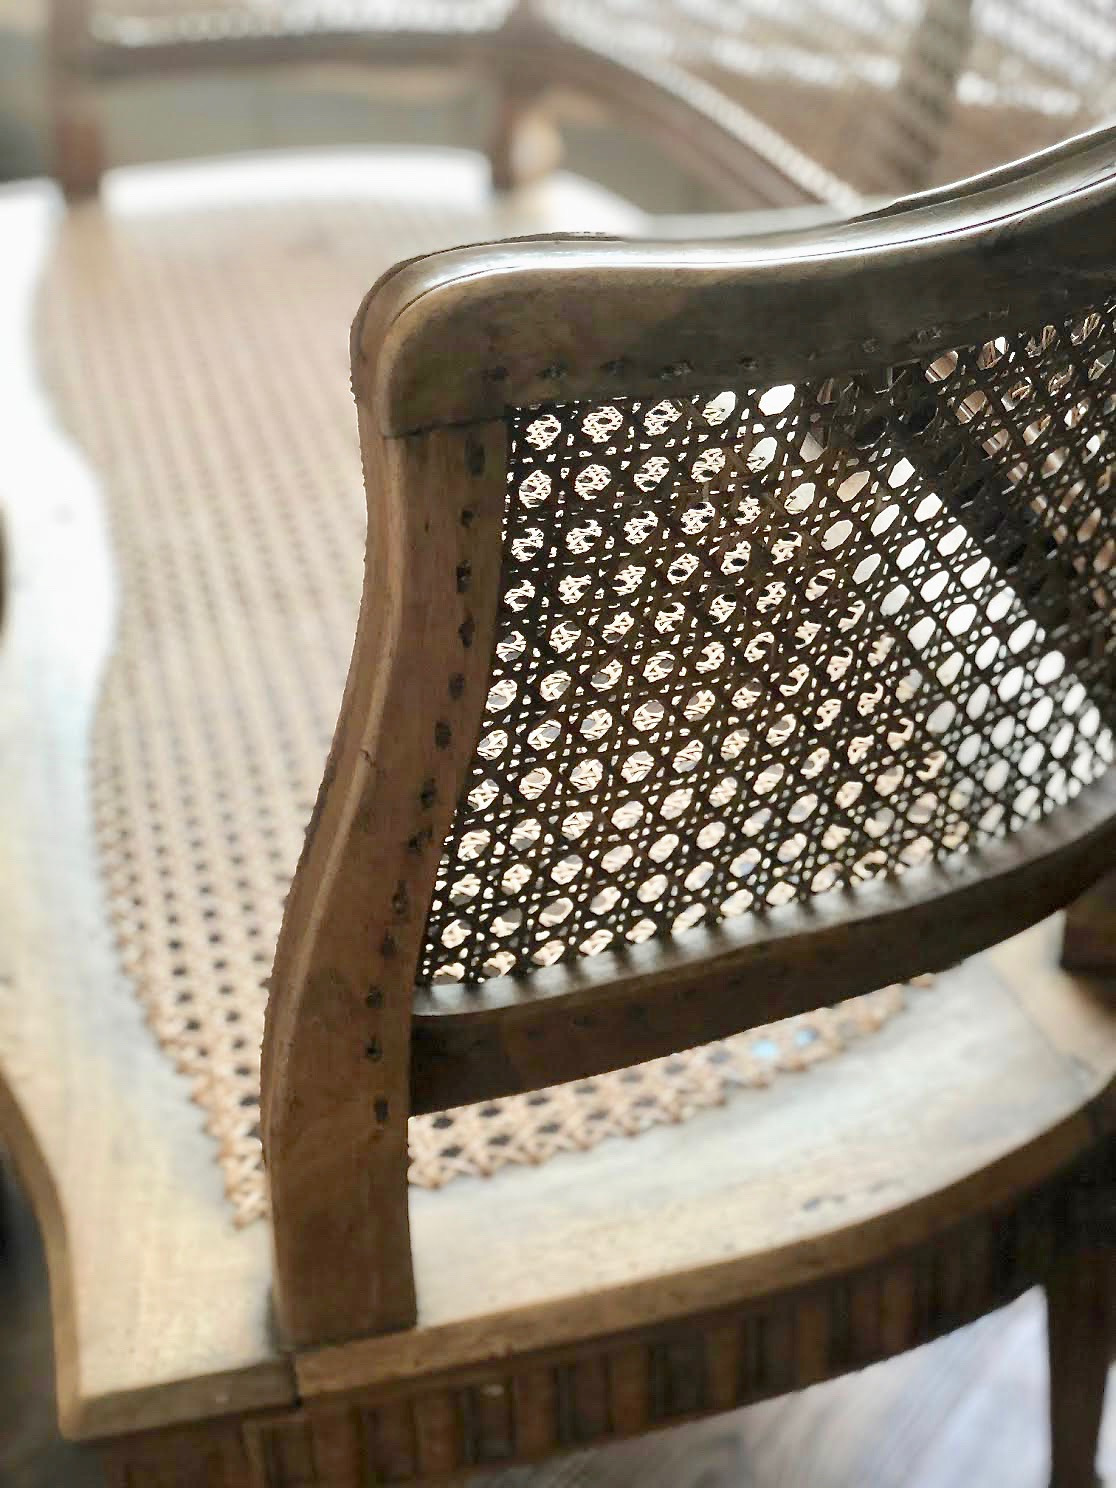 Antique Furniture for Sale On Craigslist Fresh Cane Chairs & Craigslist Shopping Tips French Country Cottage